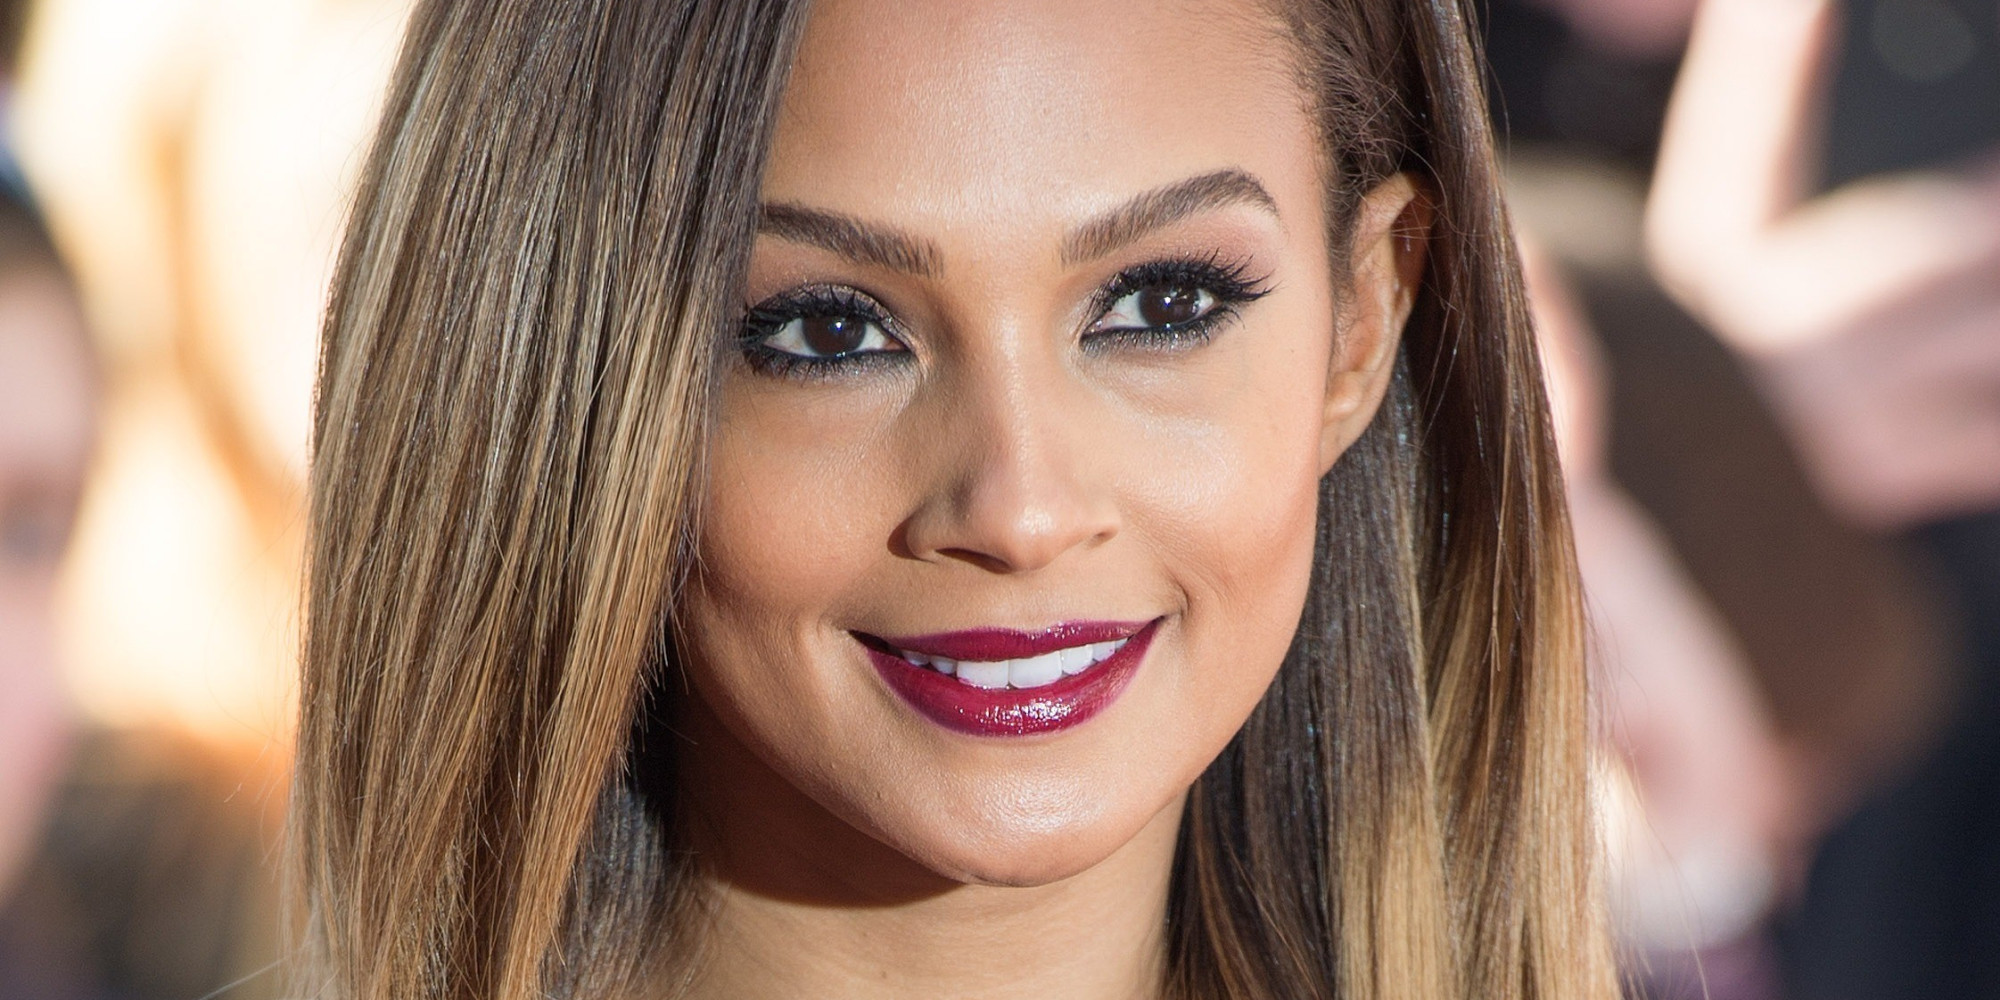 Alesha Dixon Slams Katie Hopkins Over Lily Allen Fat Comments: 'She's A B*tch' | HuffPost UK